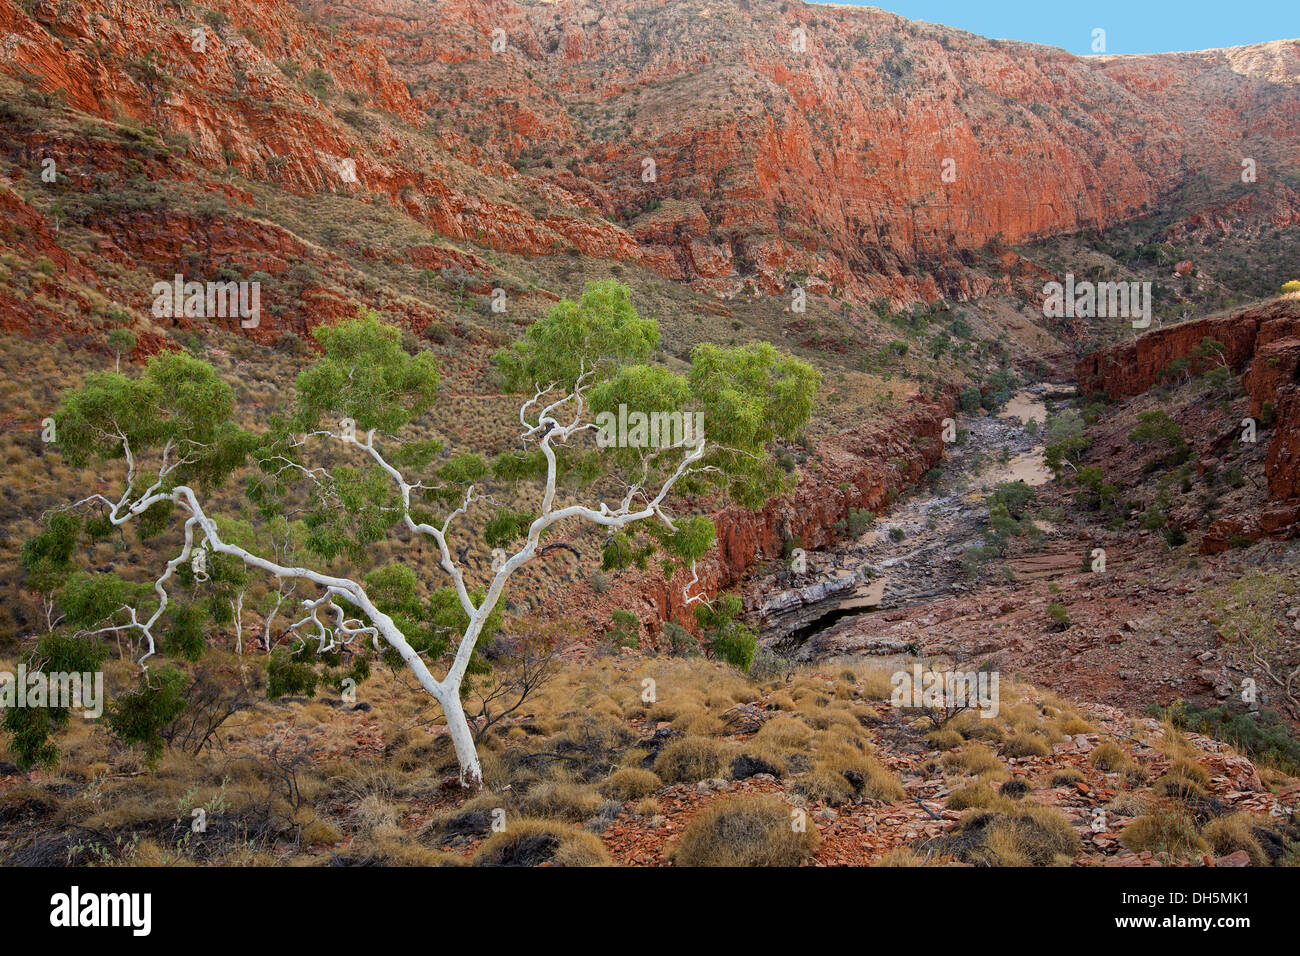 Spectacular view of rugged outback landscape with Ormiston Gorge slicing through red rocky ranges near Alice Springs Australia - Stock Image